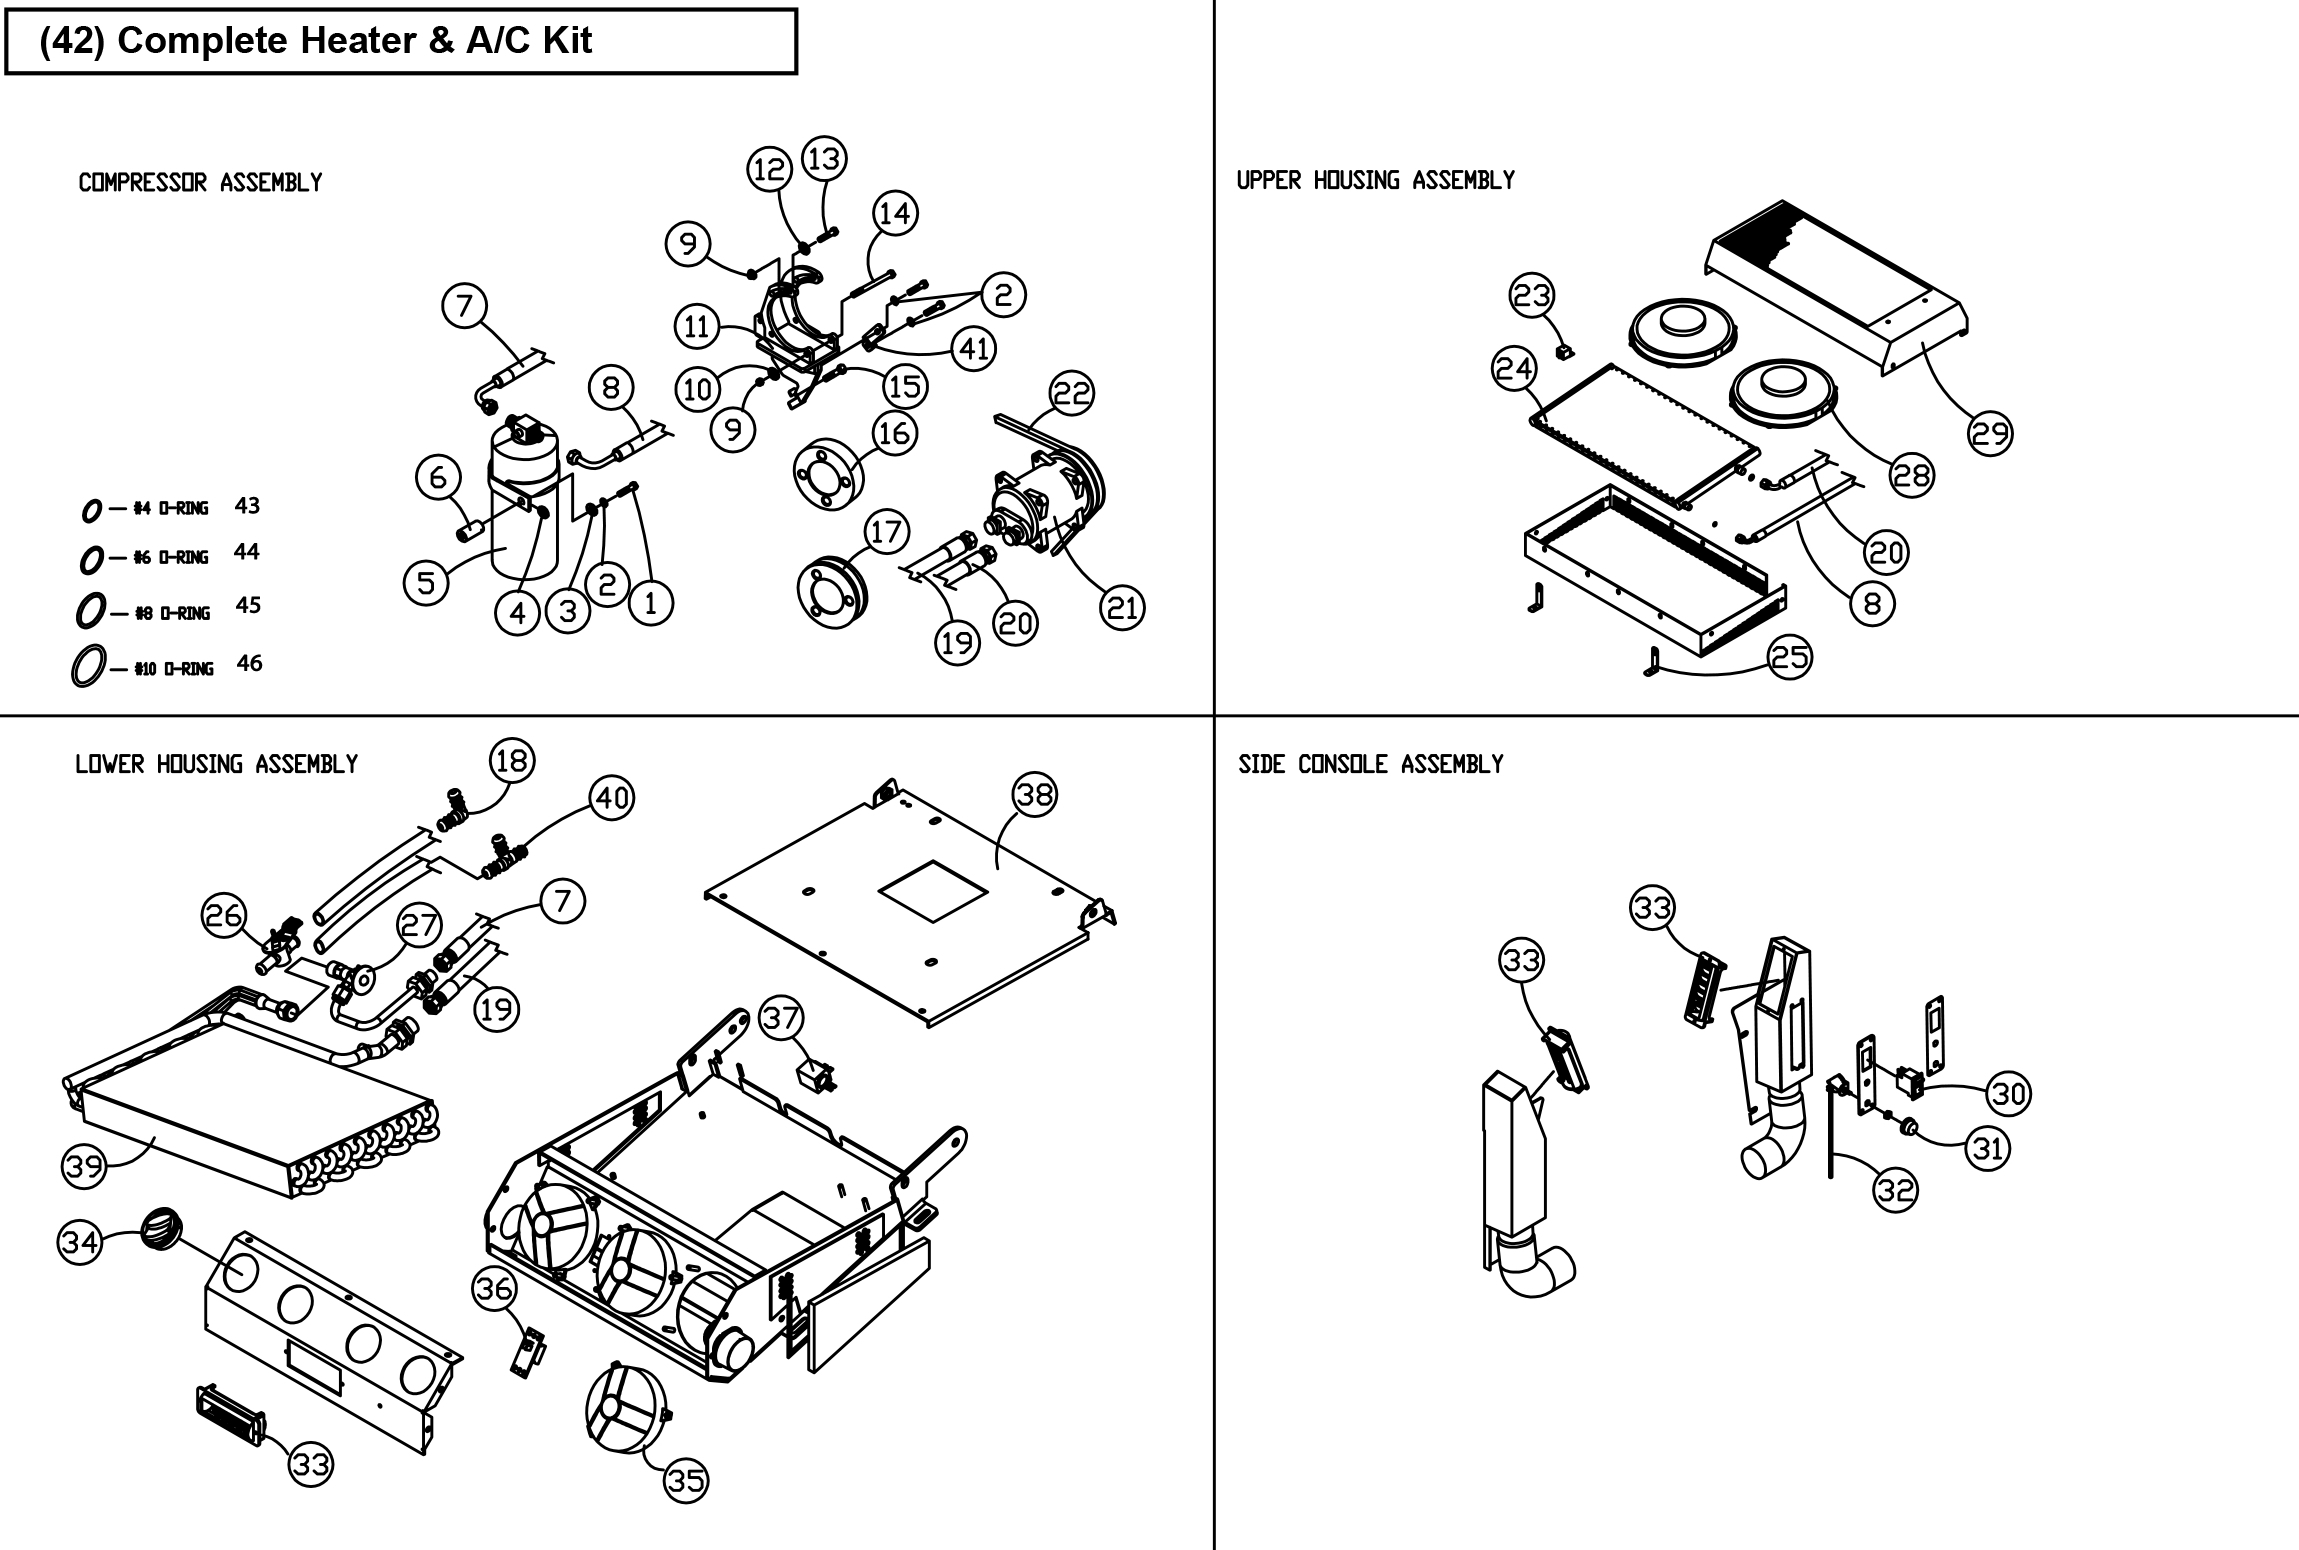 Diagram 20-A Heater and Air Conditioning Assembly